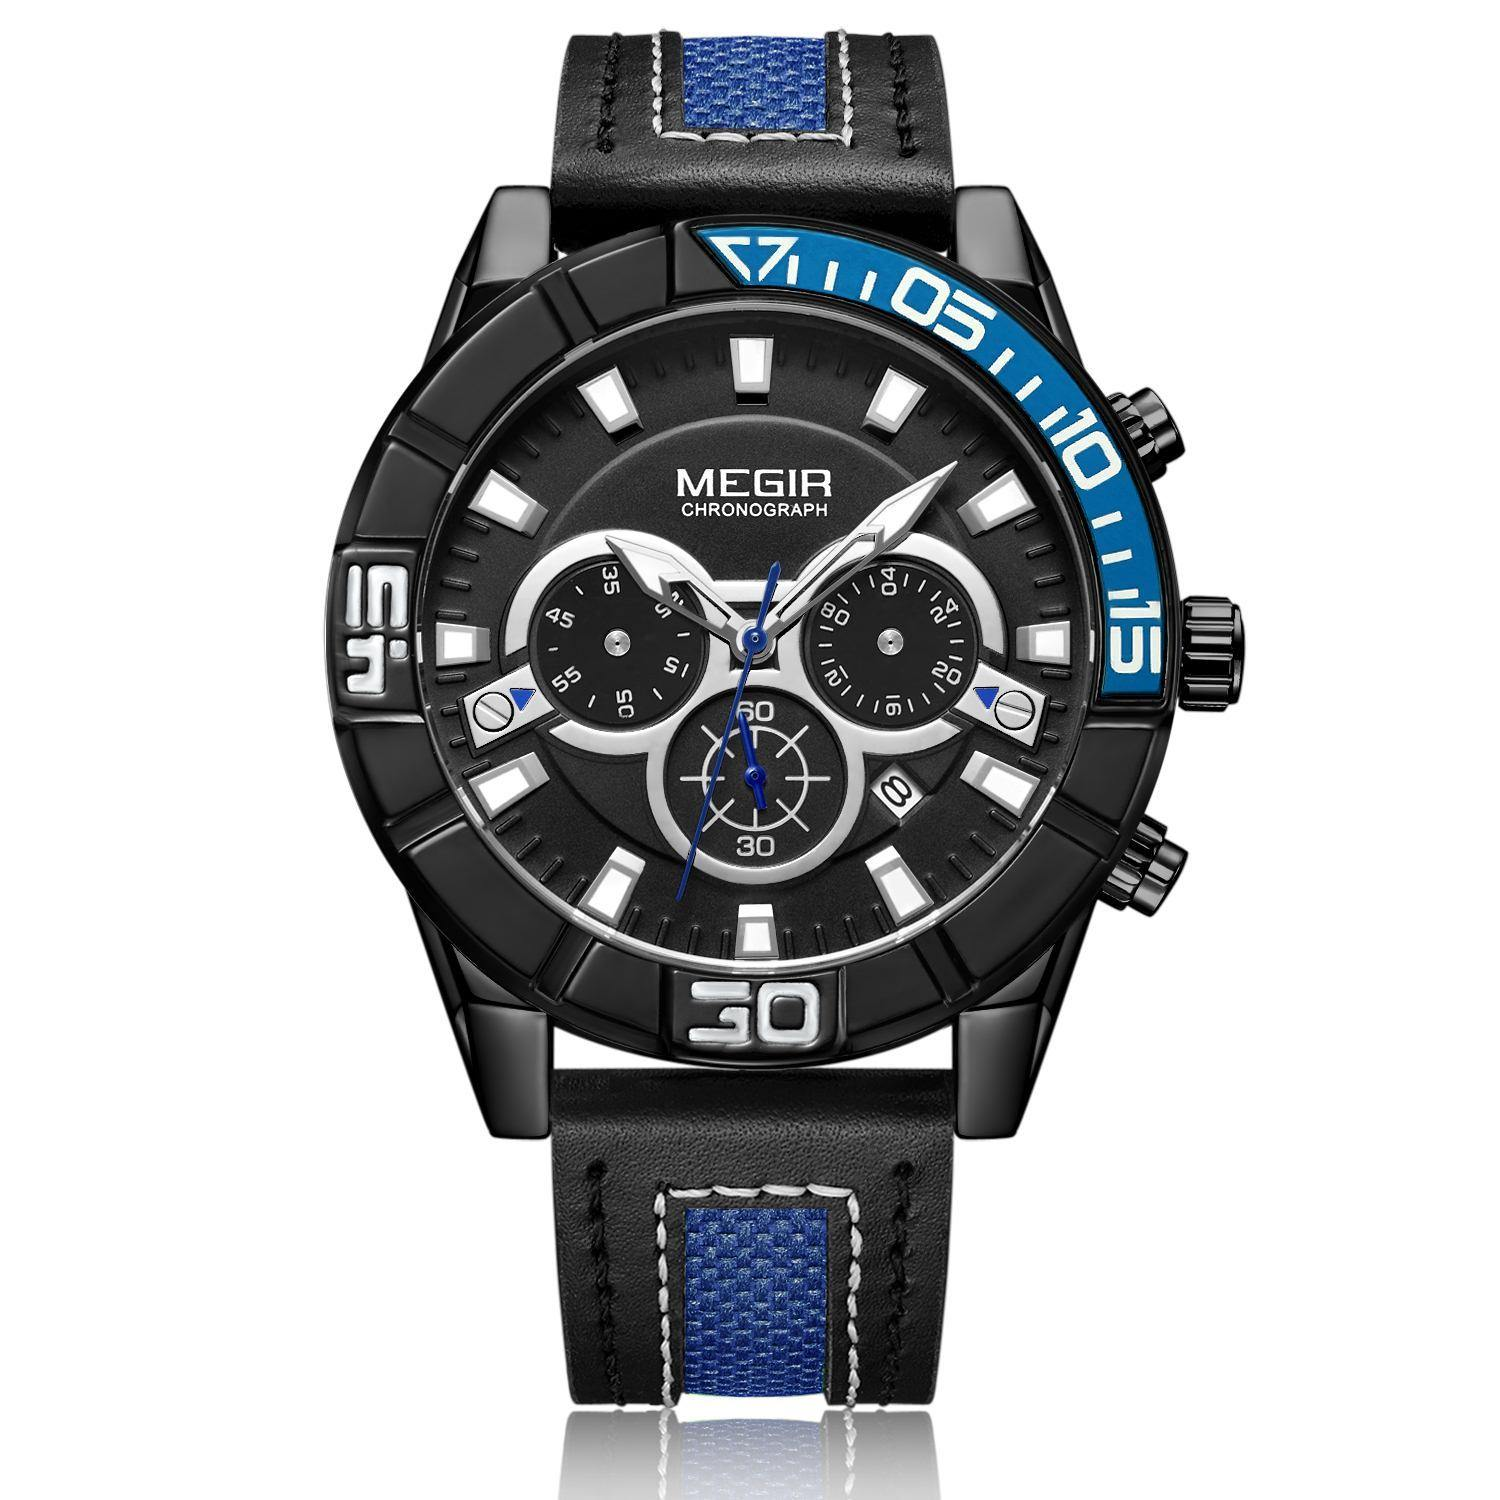 MEGIR Creative sports watch 2066 - MEGIR